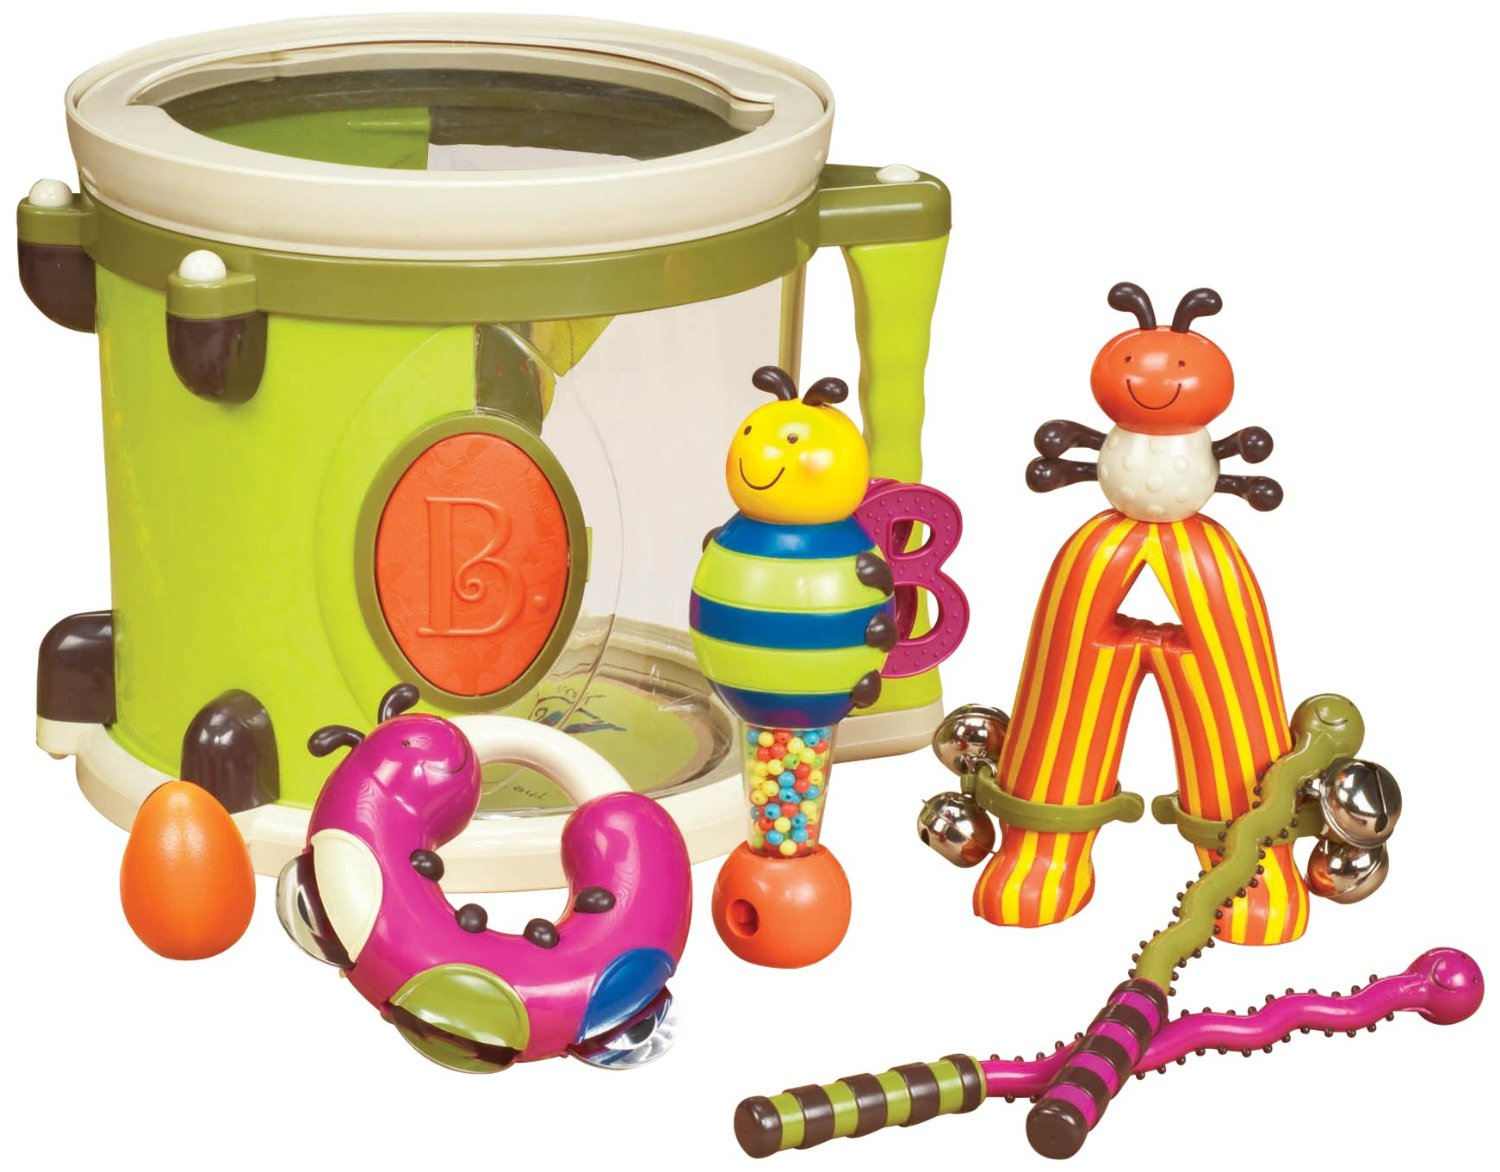 Sensory Baby Play: Teach your Baby with Music Play